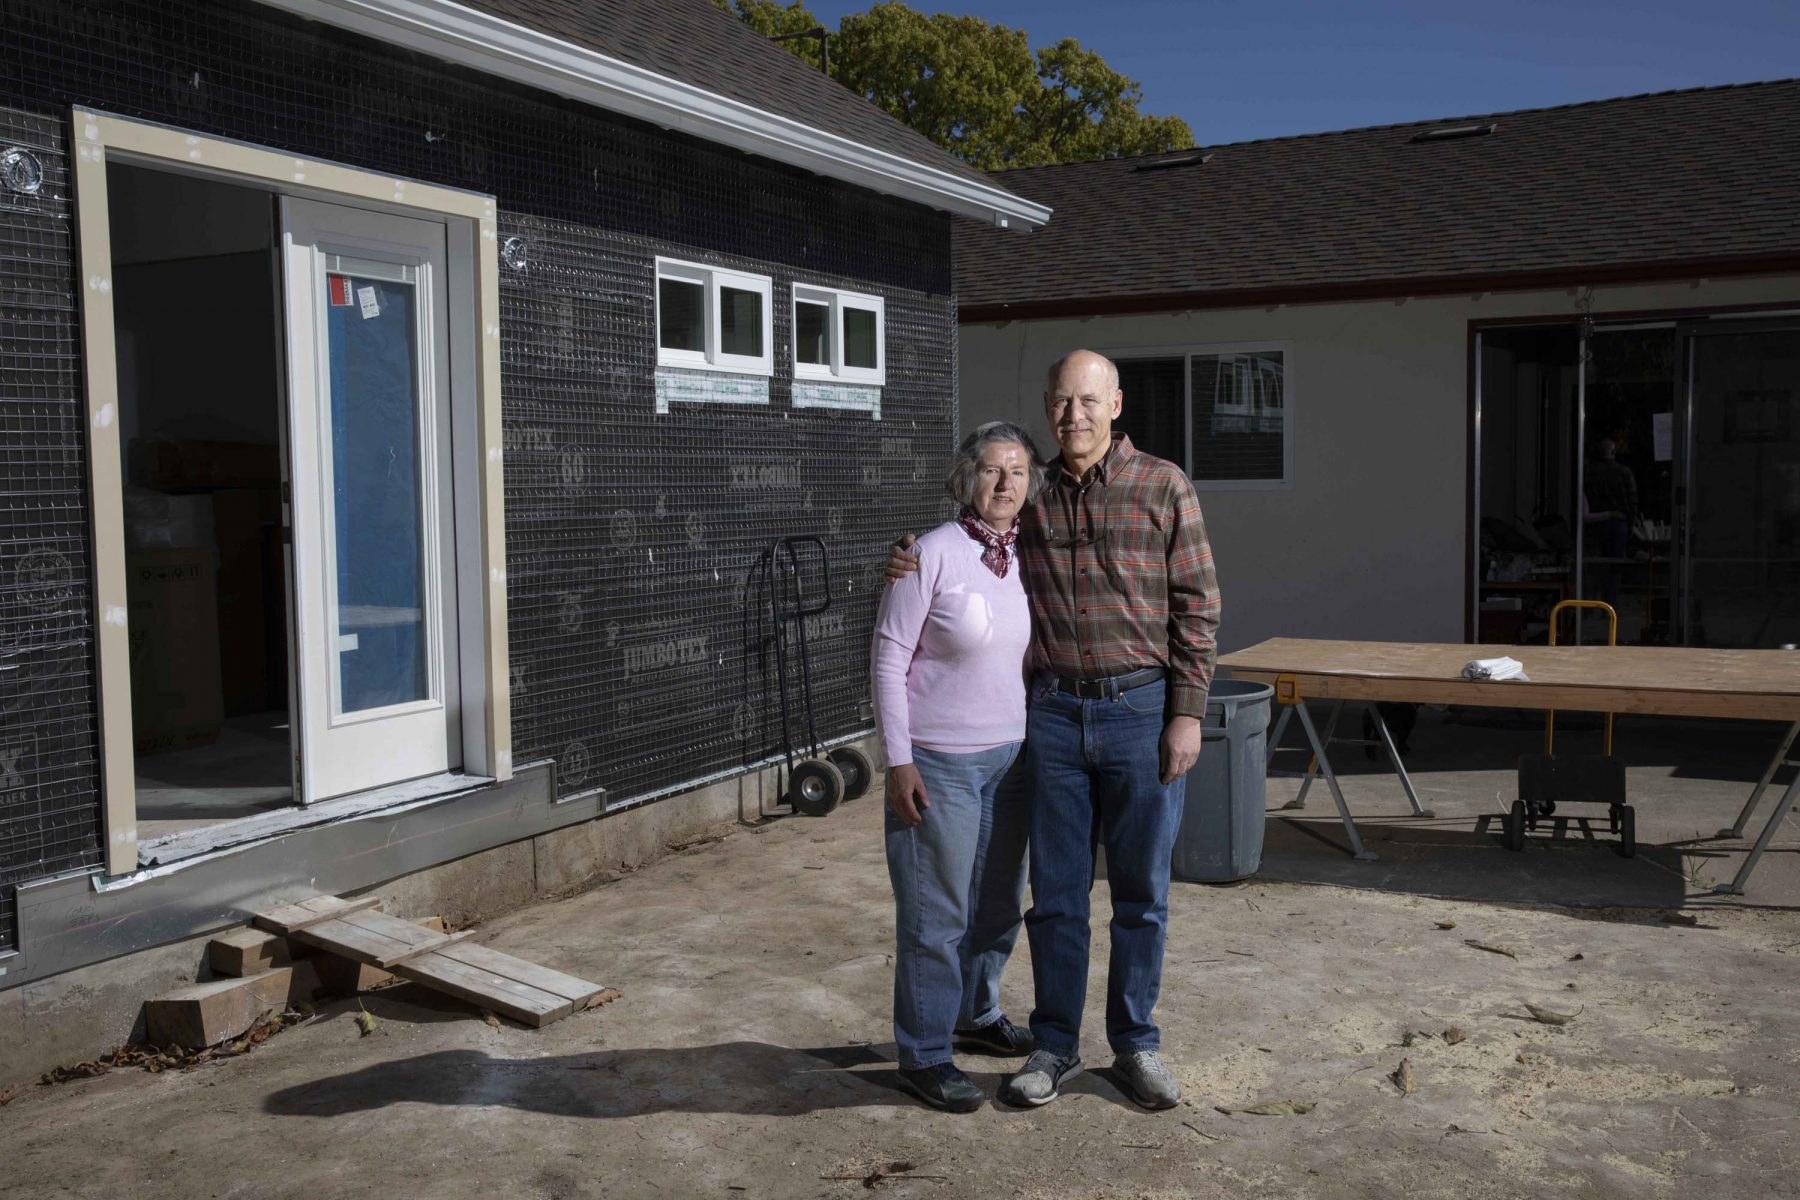 Paul and Rosa Boehm outside the Accessory Dwelling Unit they're building in the backyard of their west San Jose home. Paul and Rosa are considering downsizing into the ADU. Photo by Sean Havey for California Dream project